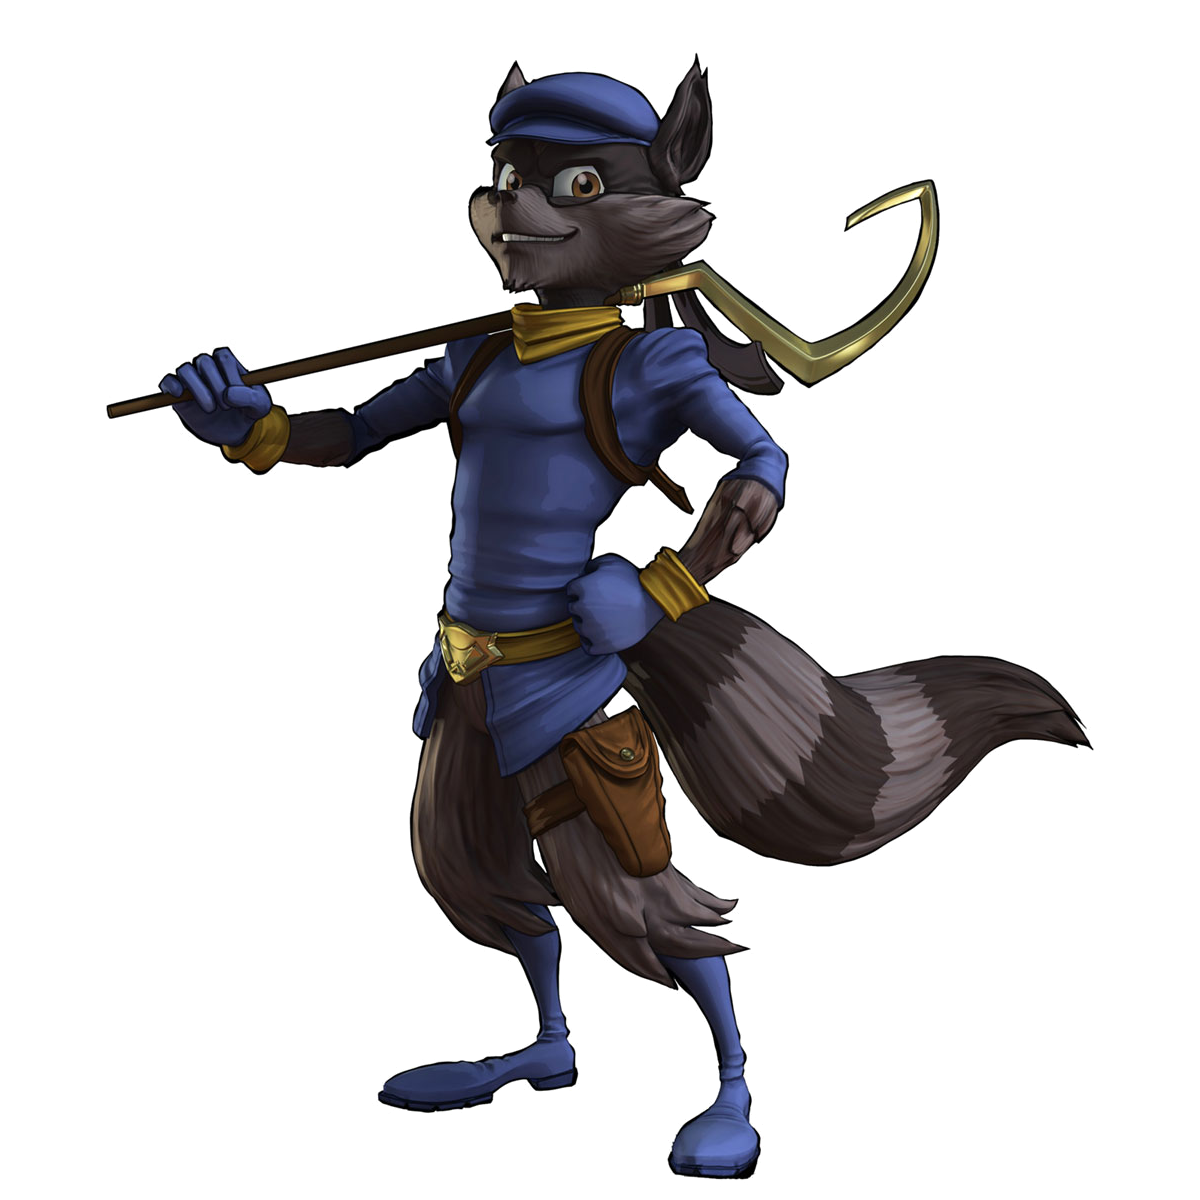 The Evolution of Sly Cooper by JennissyCooper on DeviantArt